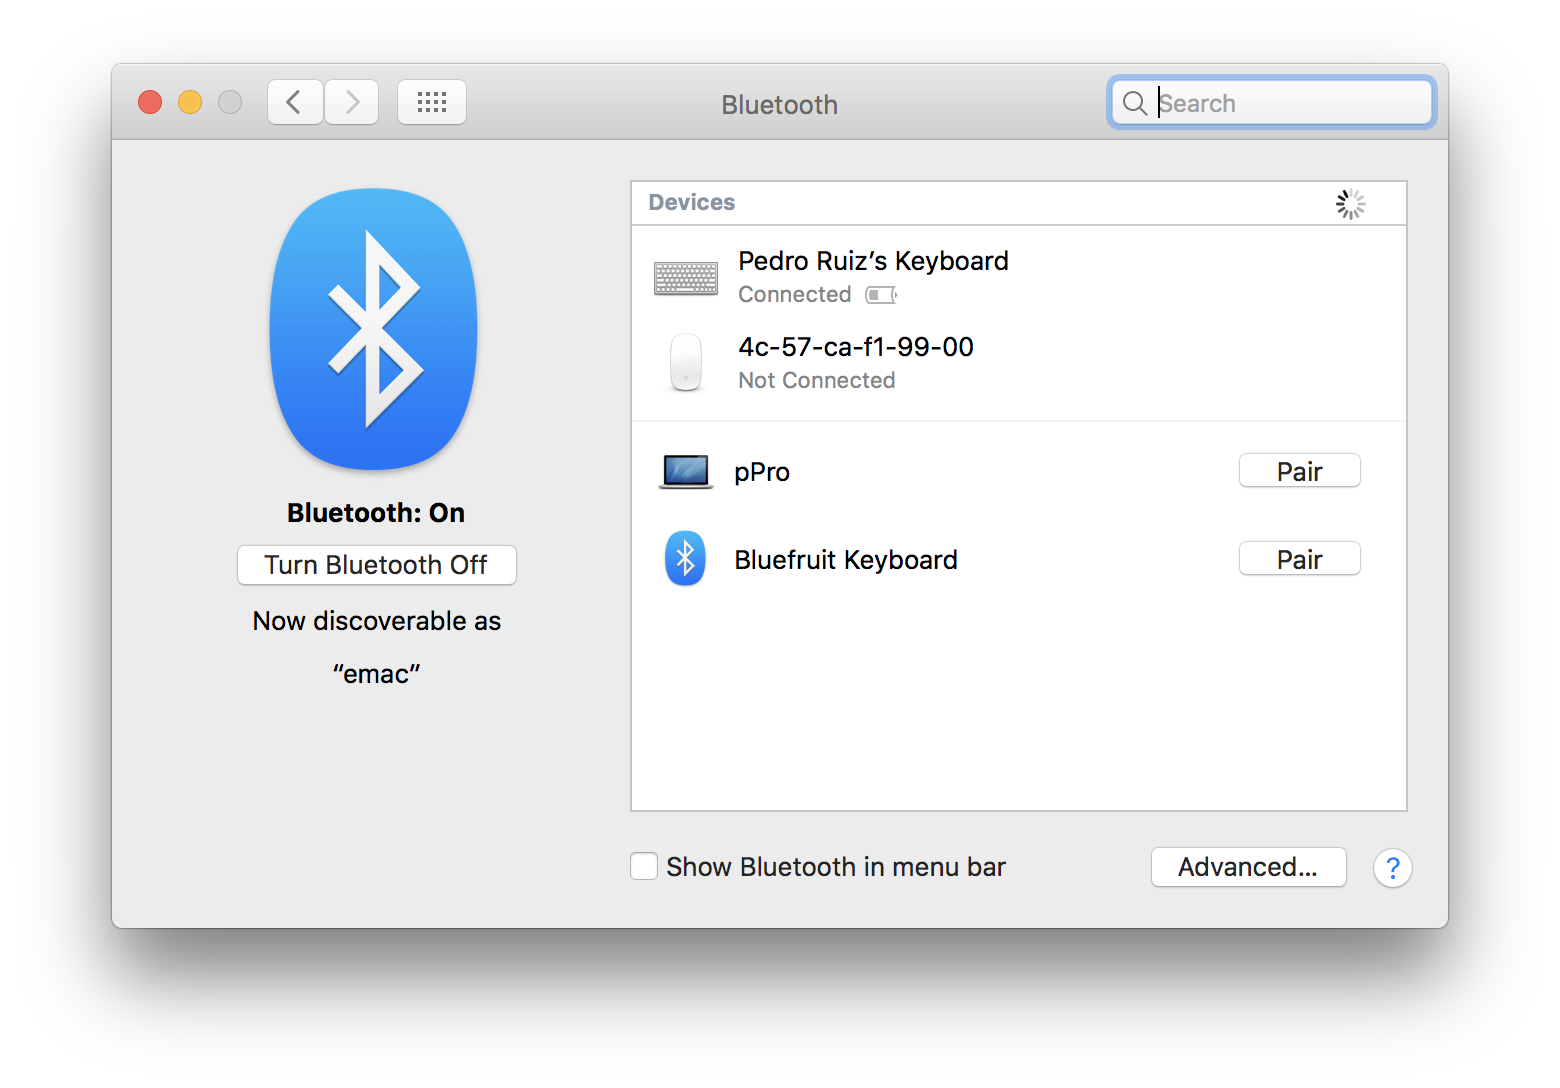 3d_printing_bluetooth-device-pair.png